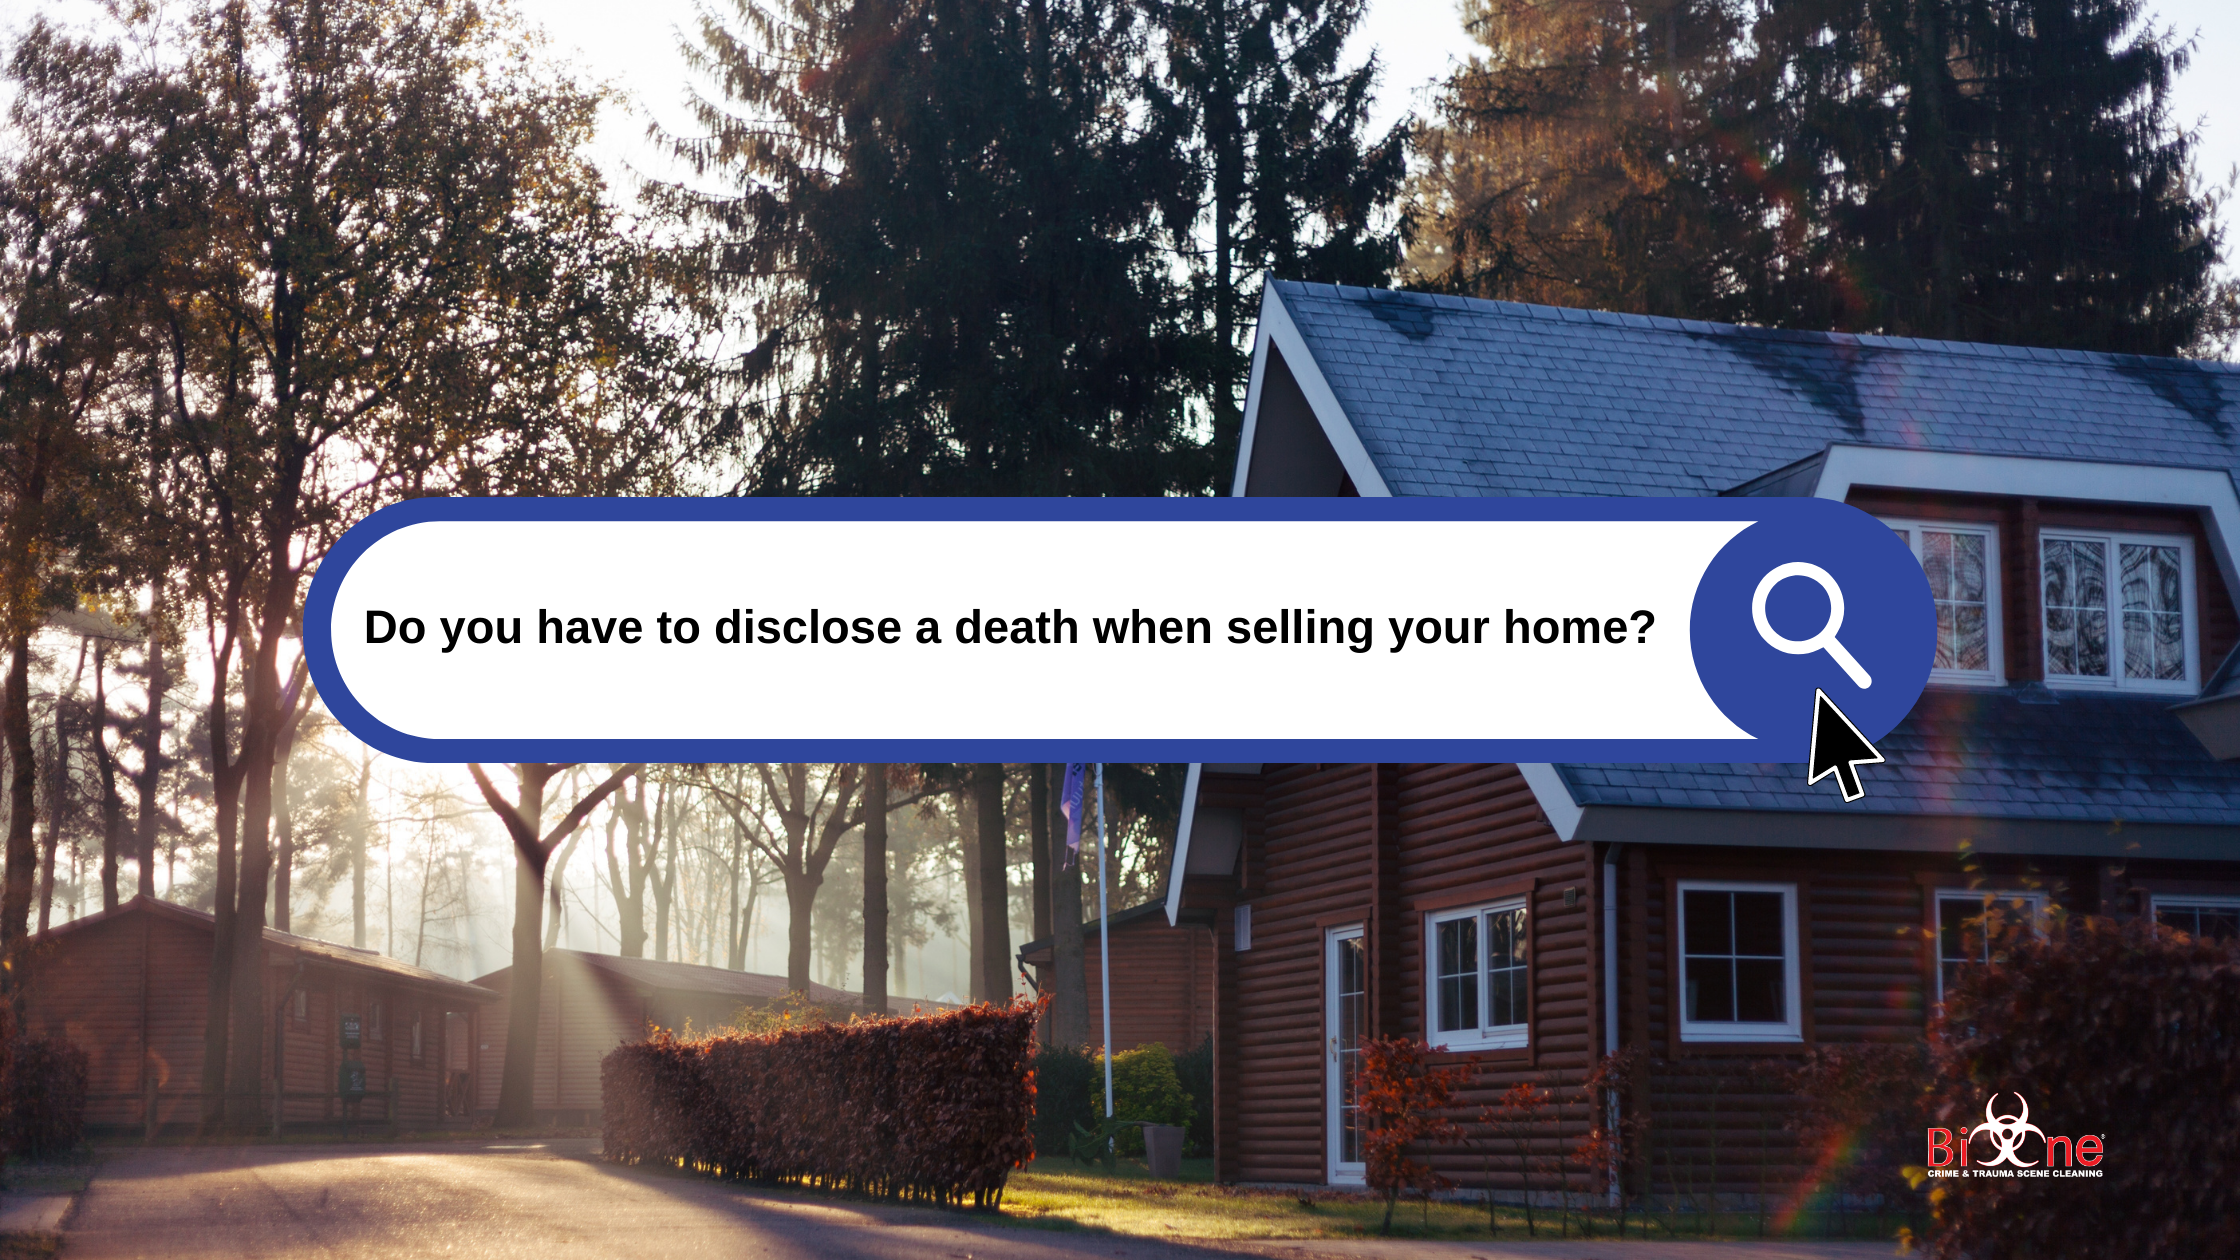 In Tennessee Do you Have to Disclose a Death When Selling Your Home?